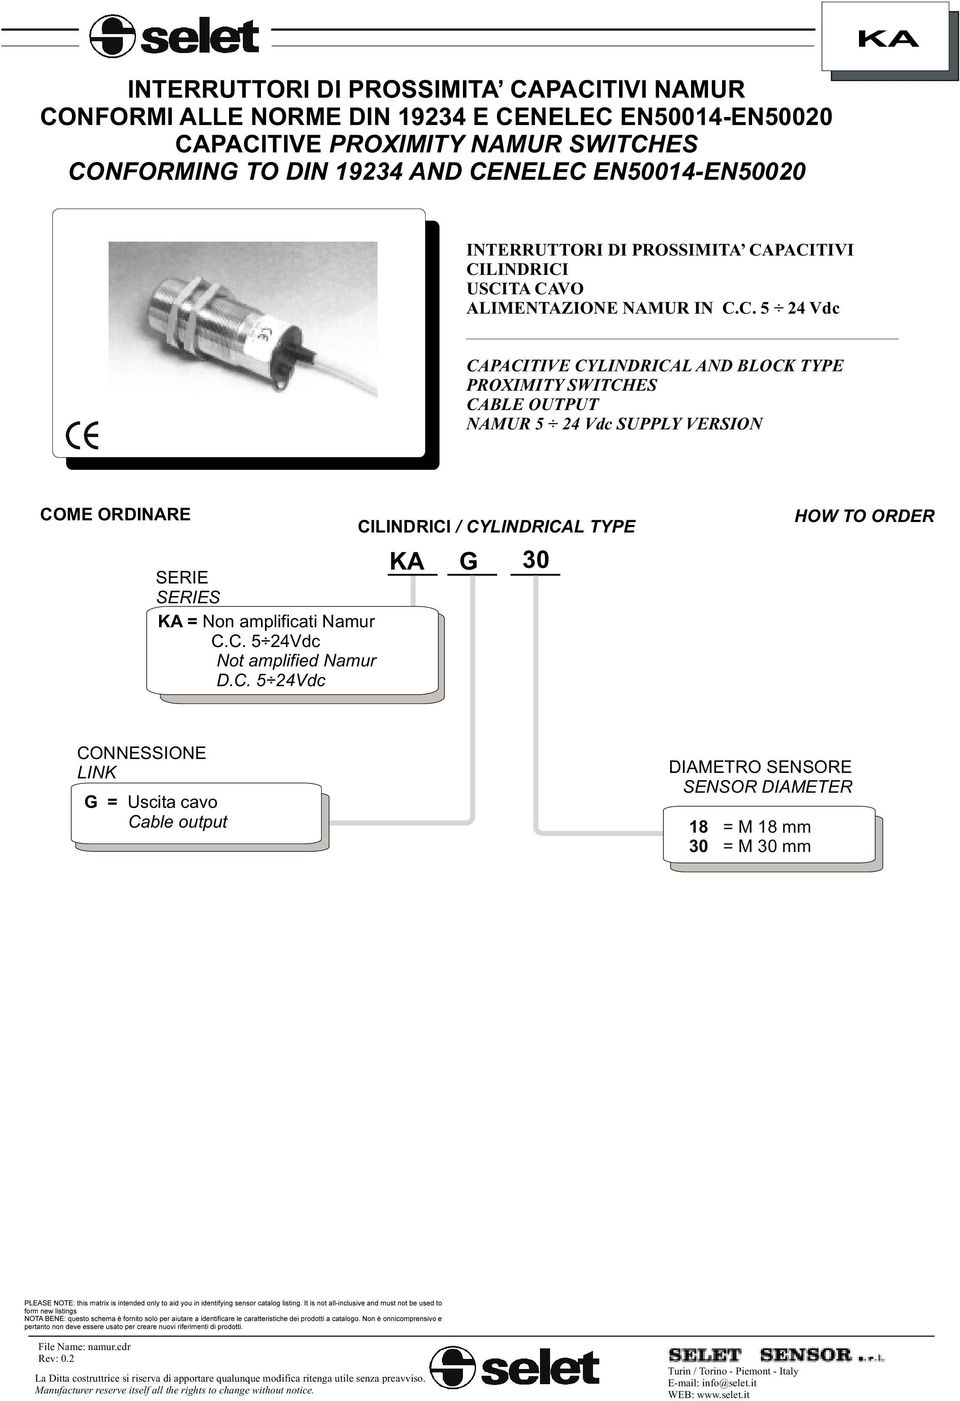 C. 5 24Vdc Not amplified Namur D.C. 5 24Vdc CILINDRICI / CYLINDRICAL TYPE KA G 30 HOW TO ORDER CONNESSIONE LINK G = Uscita cavo Cable output DIAMETRO SENSORE SENSOR DIAMETER 18 30 =M18mm =M30mm